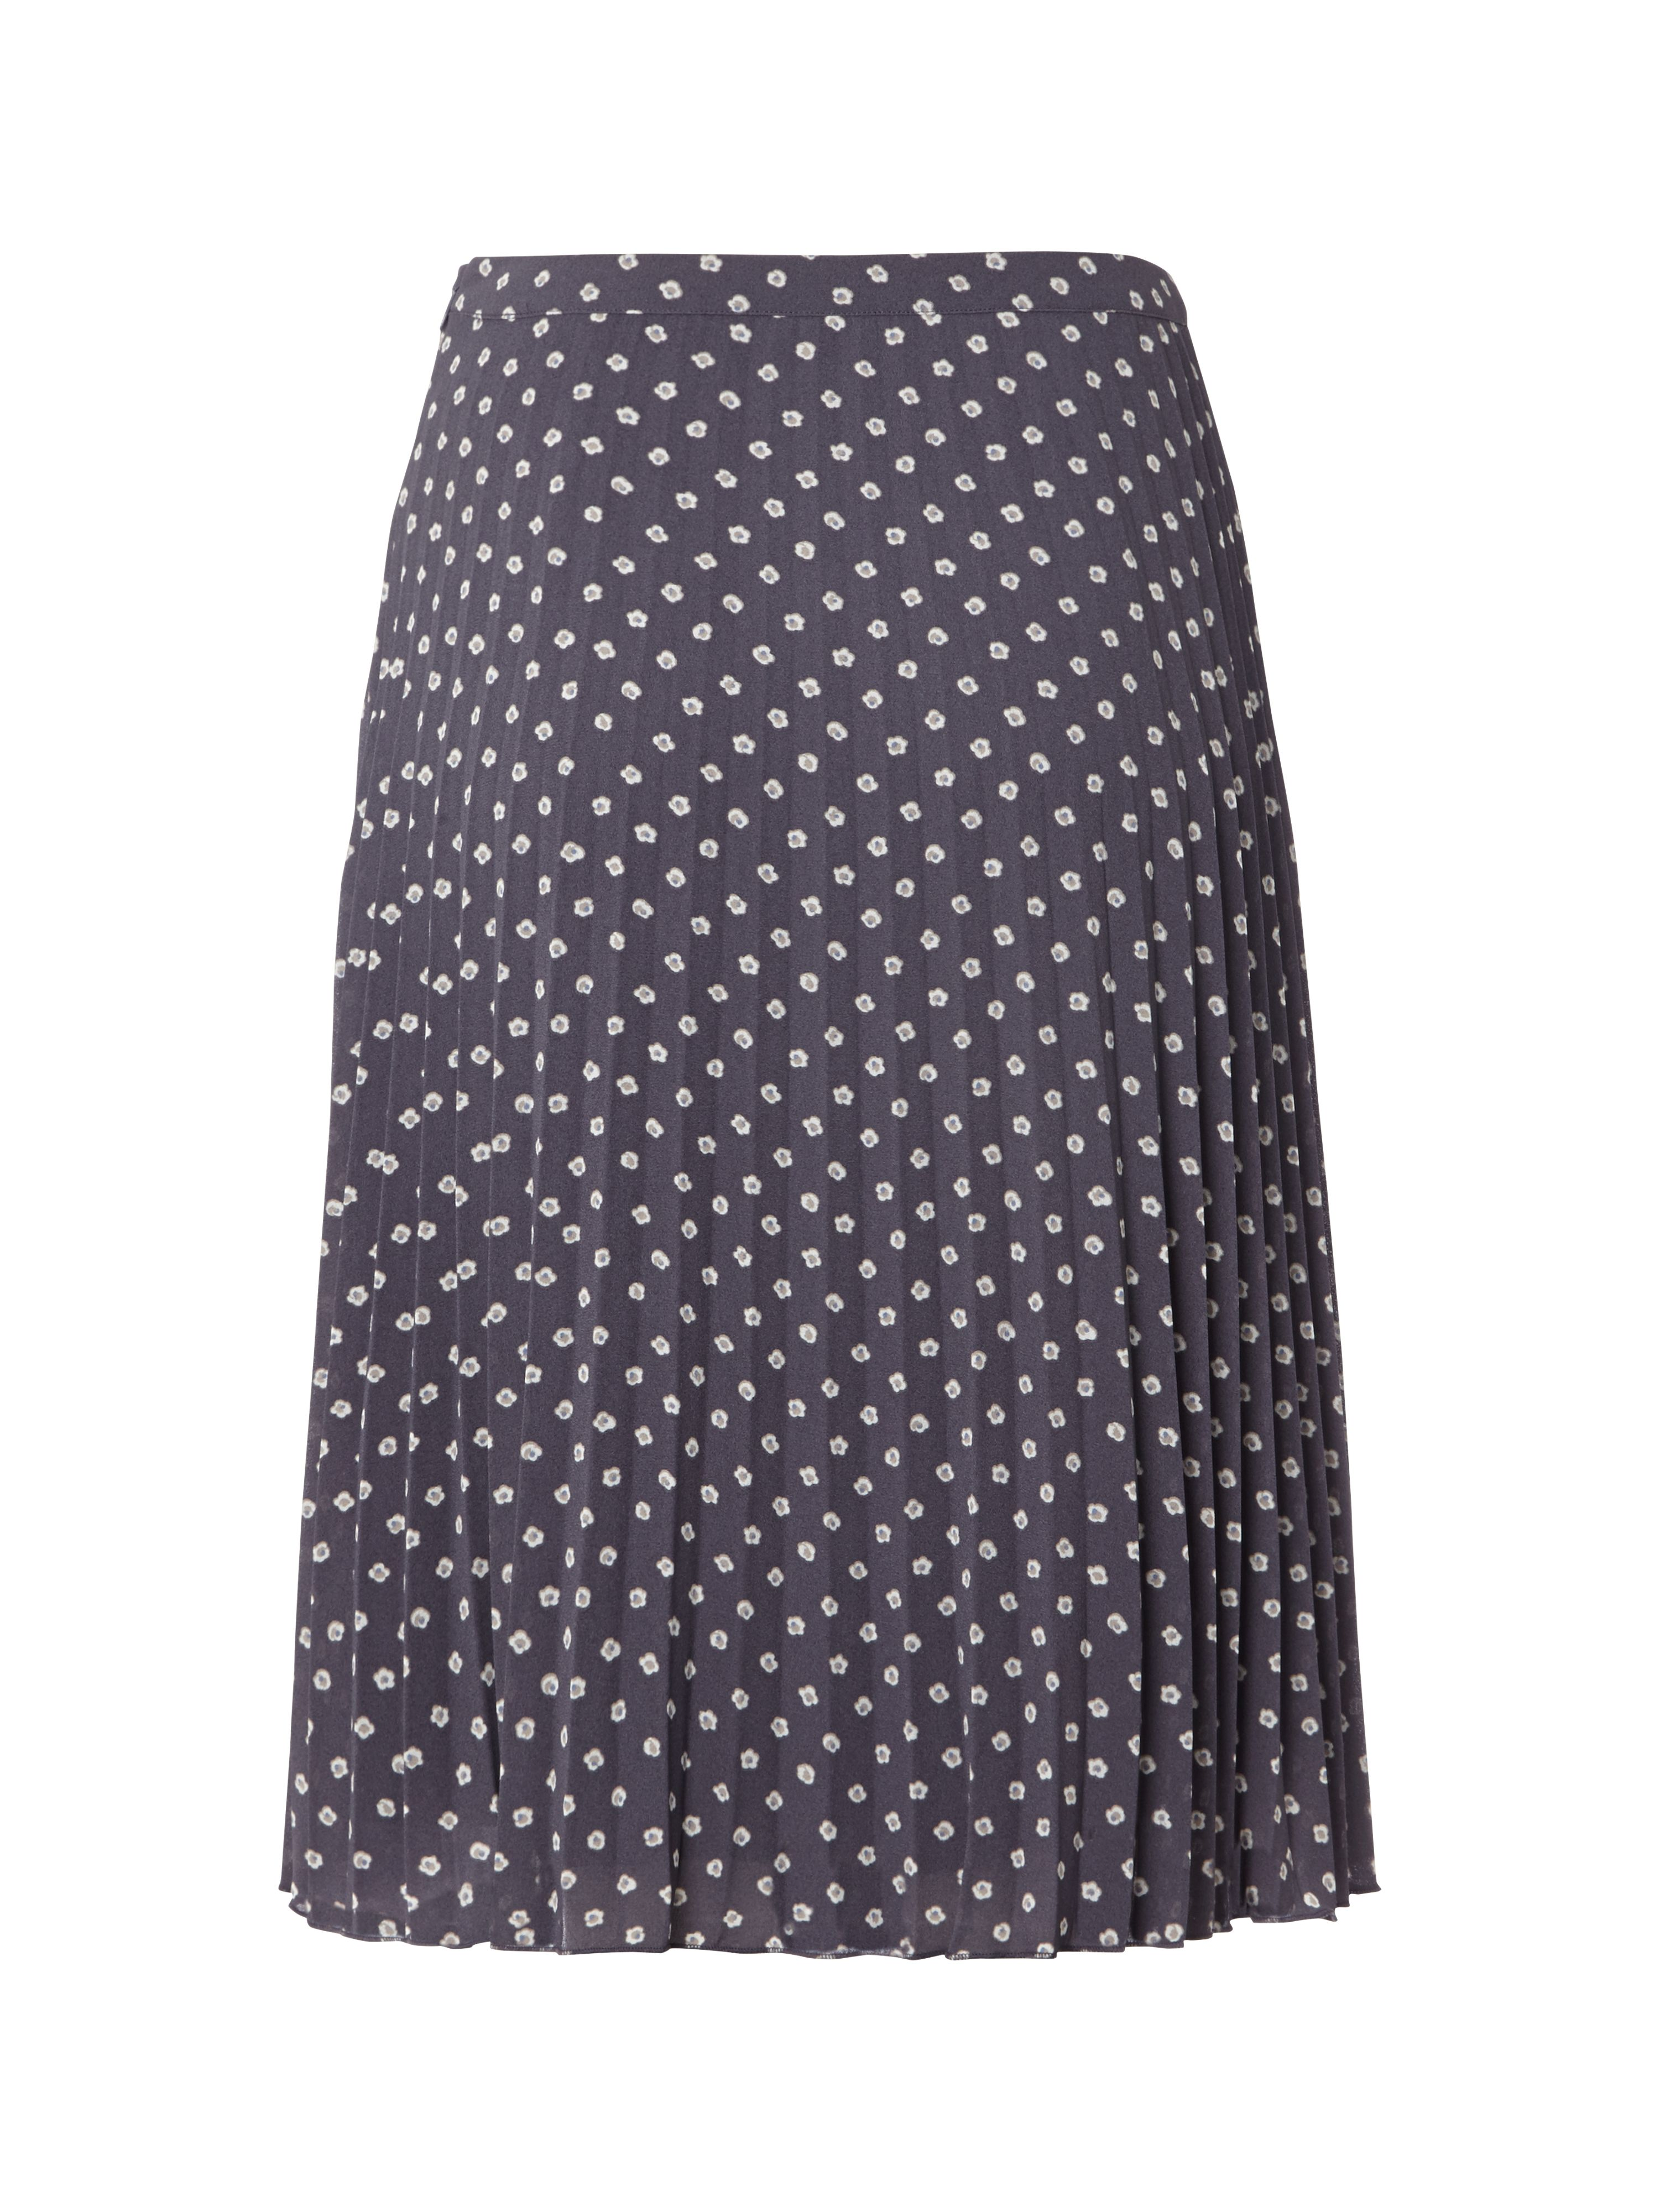 Florine Pleat Skirt